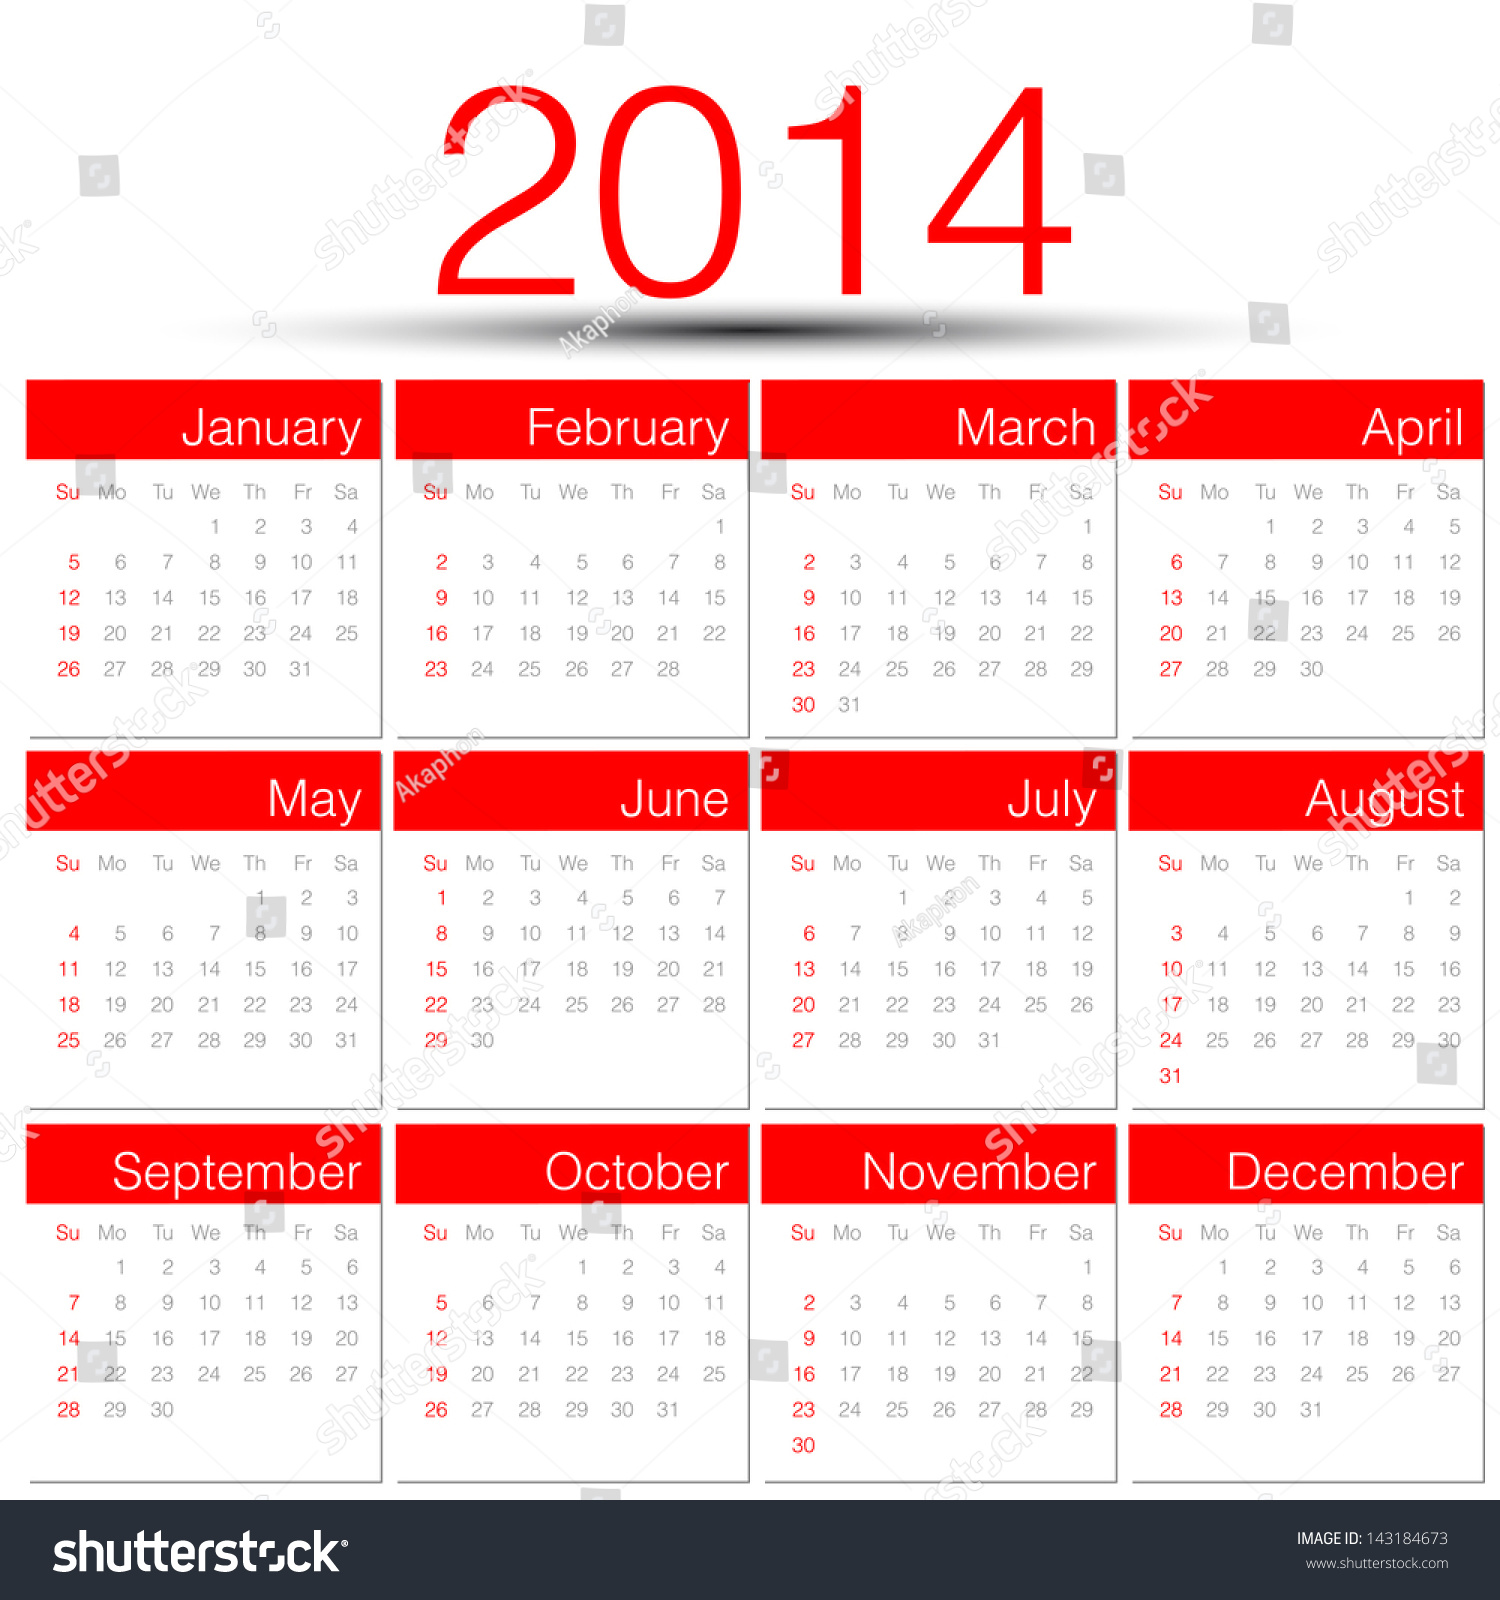 Calendar Red : Simple year vector calendar red stock